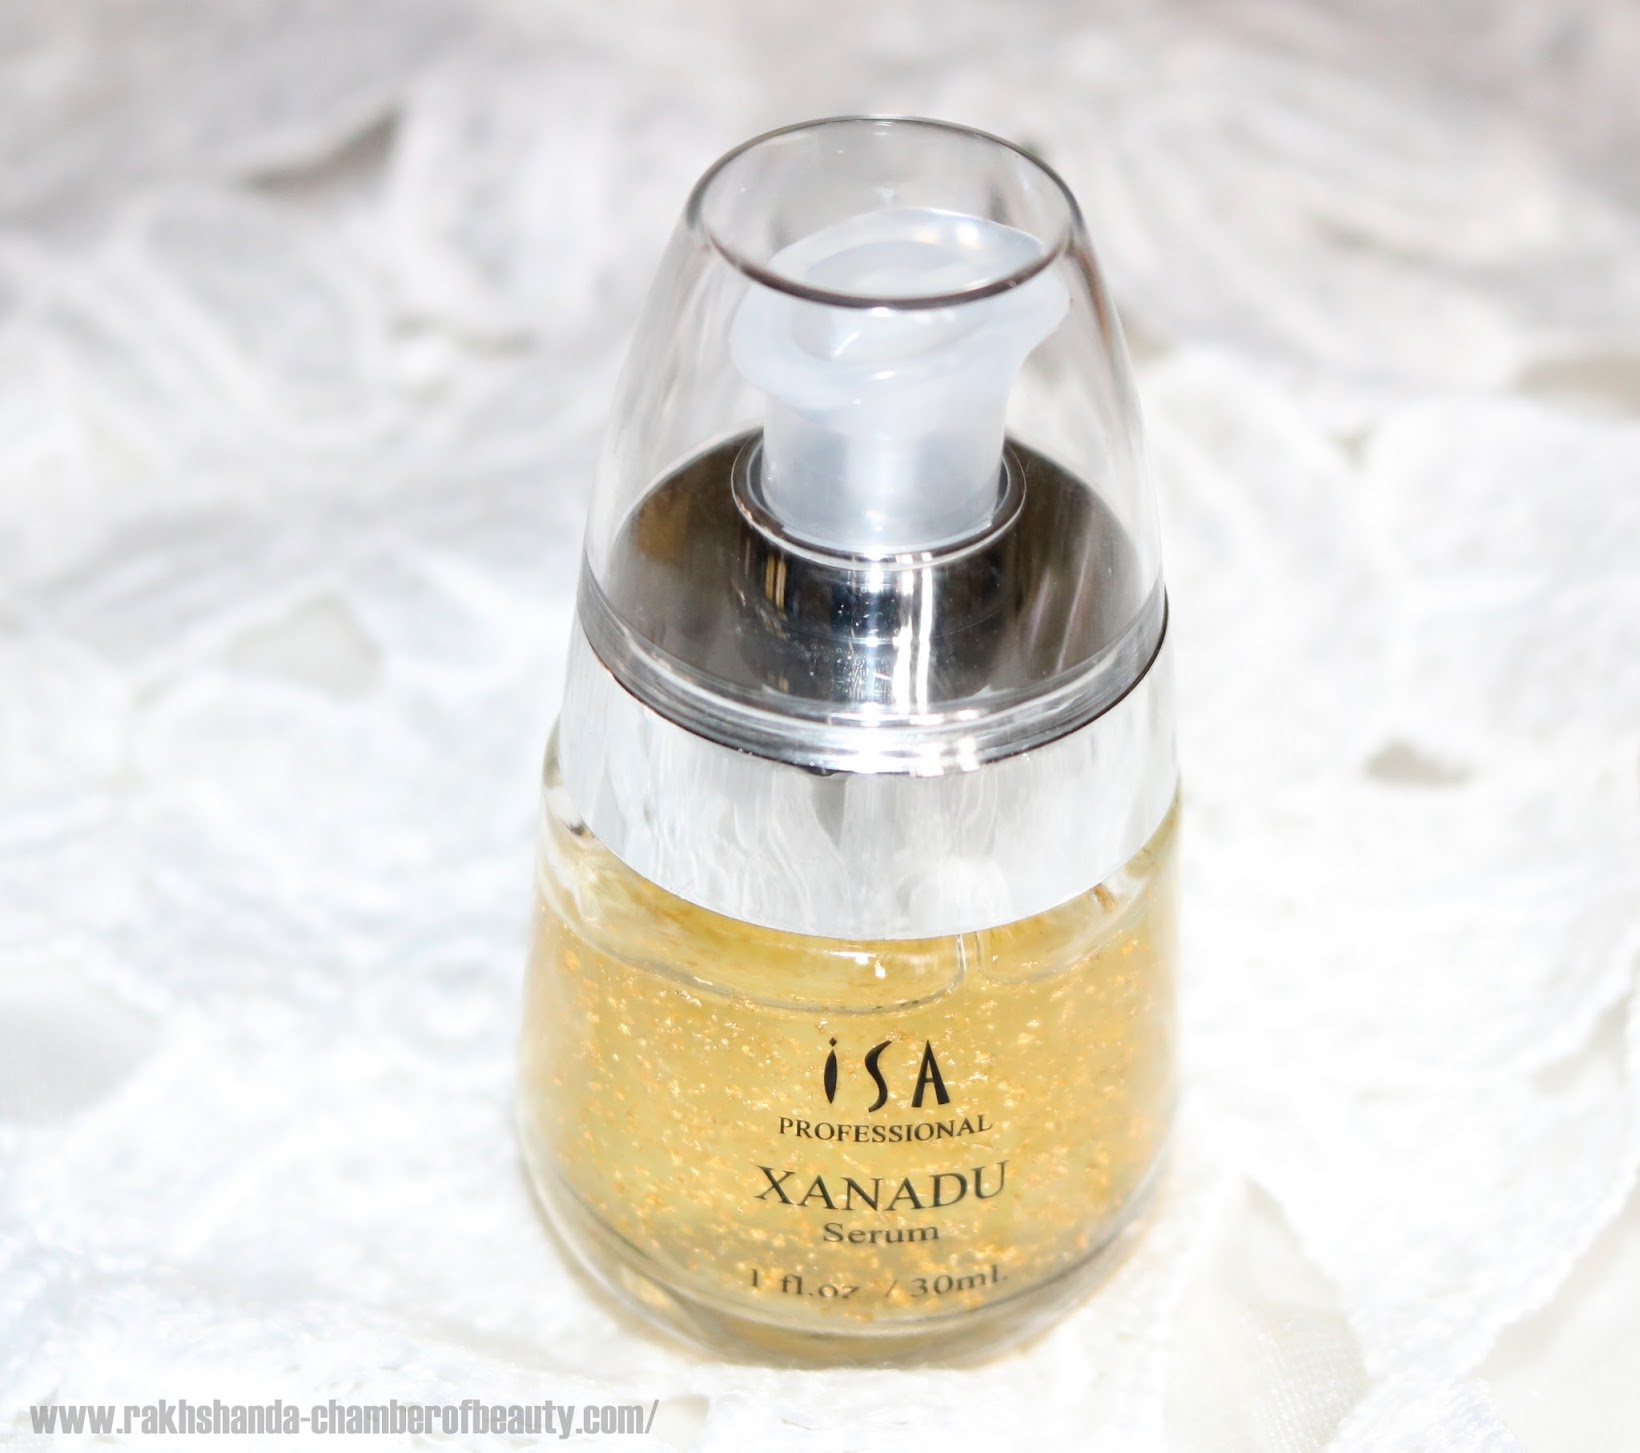 Isa Professional Xanadu 24K Gold Serum Review+Giveaway, anti ageing face serum, Indian beauty blogger